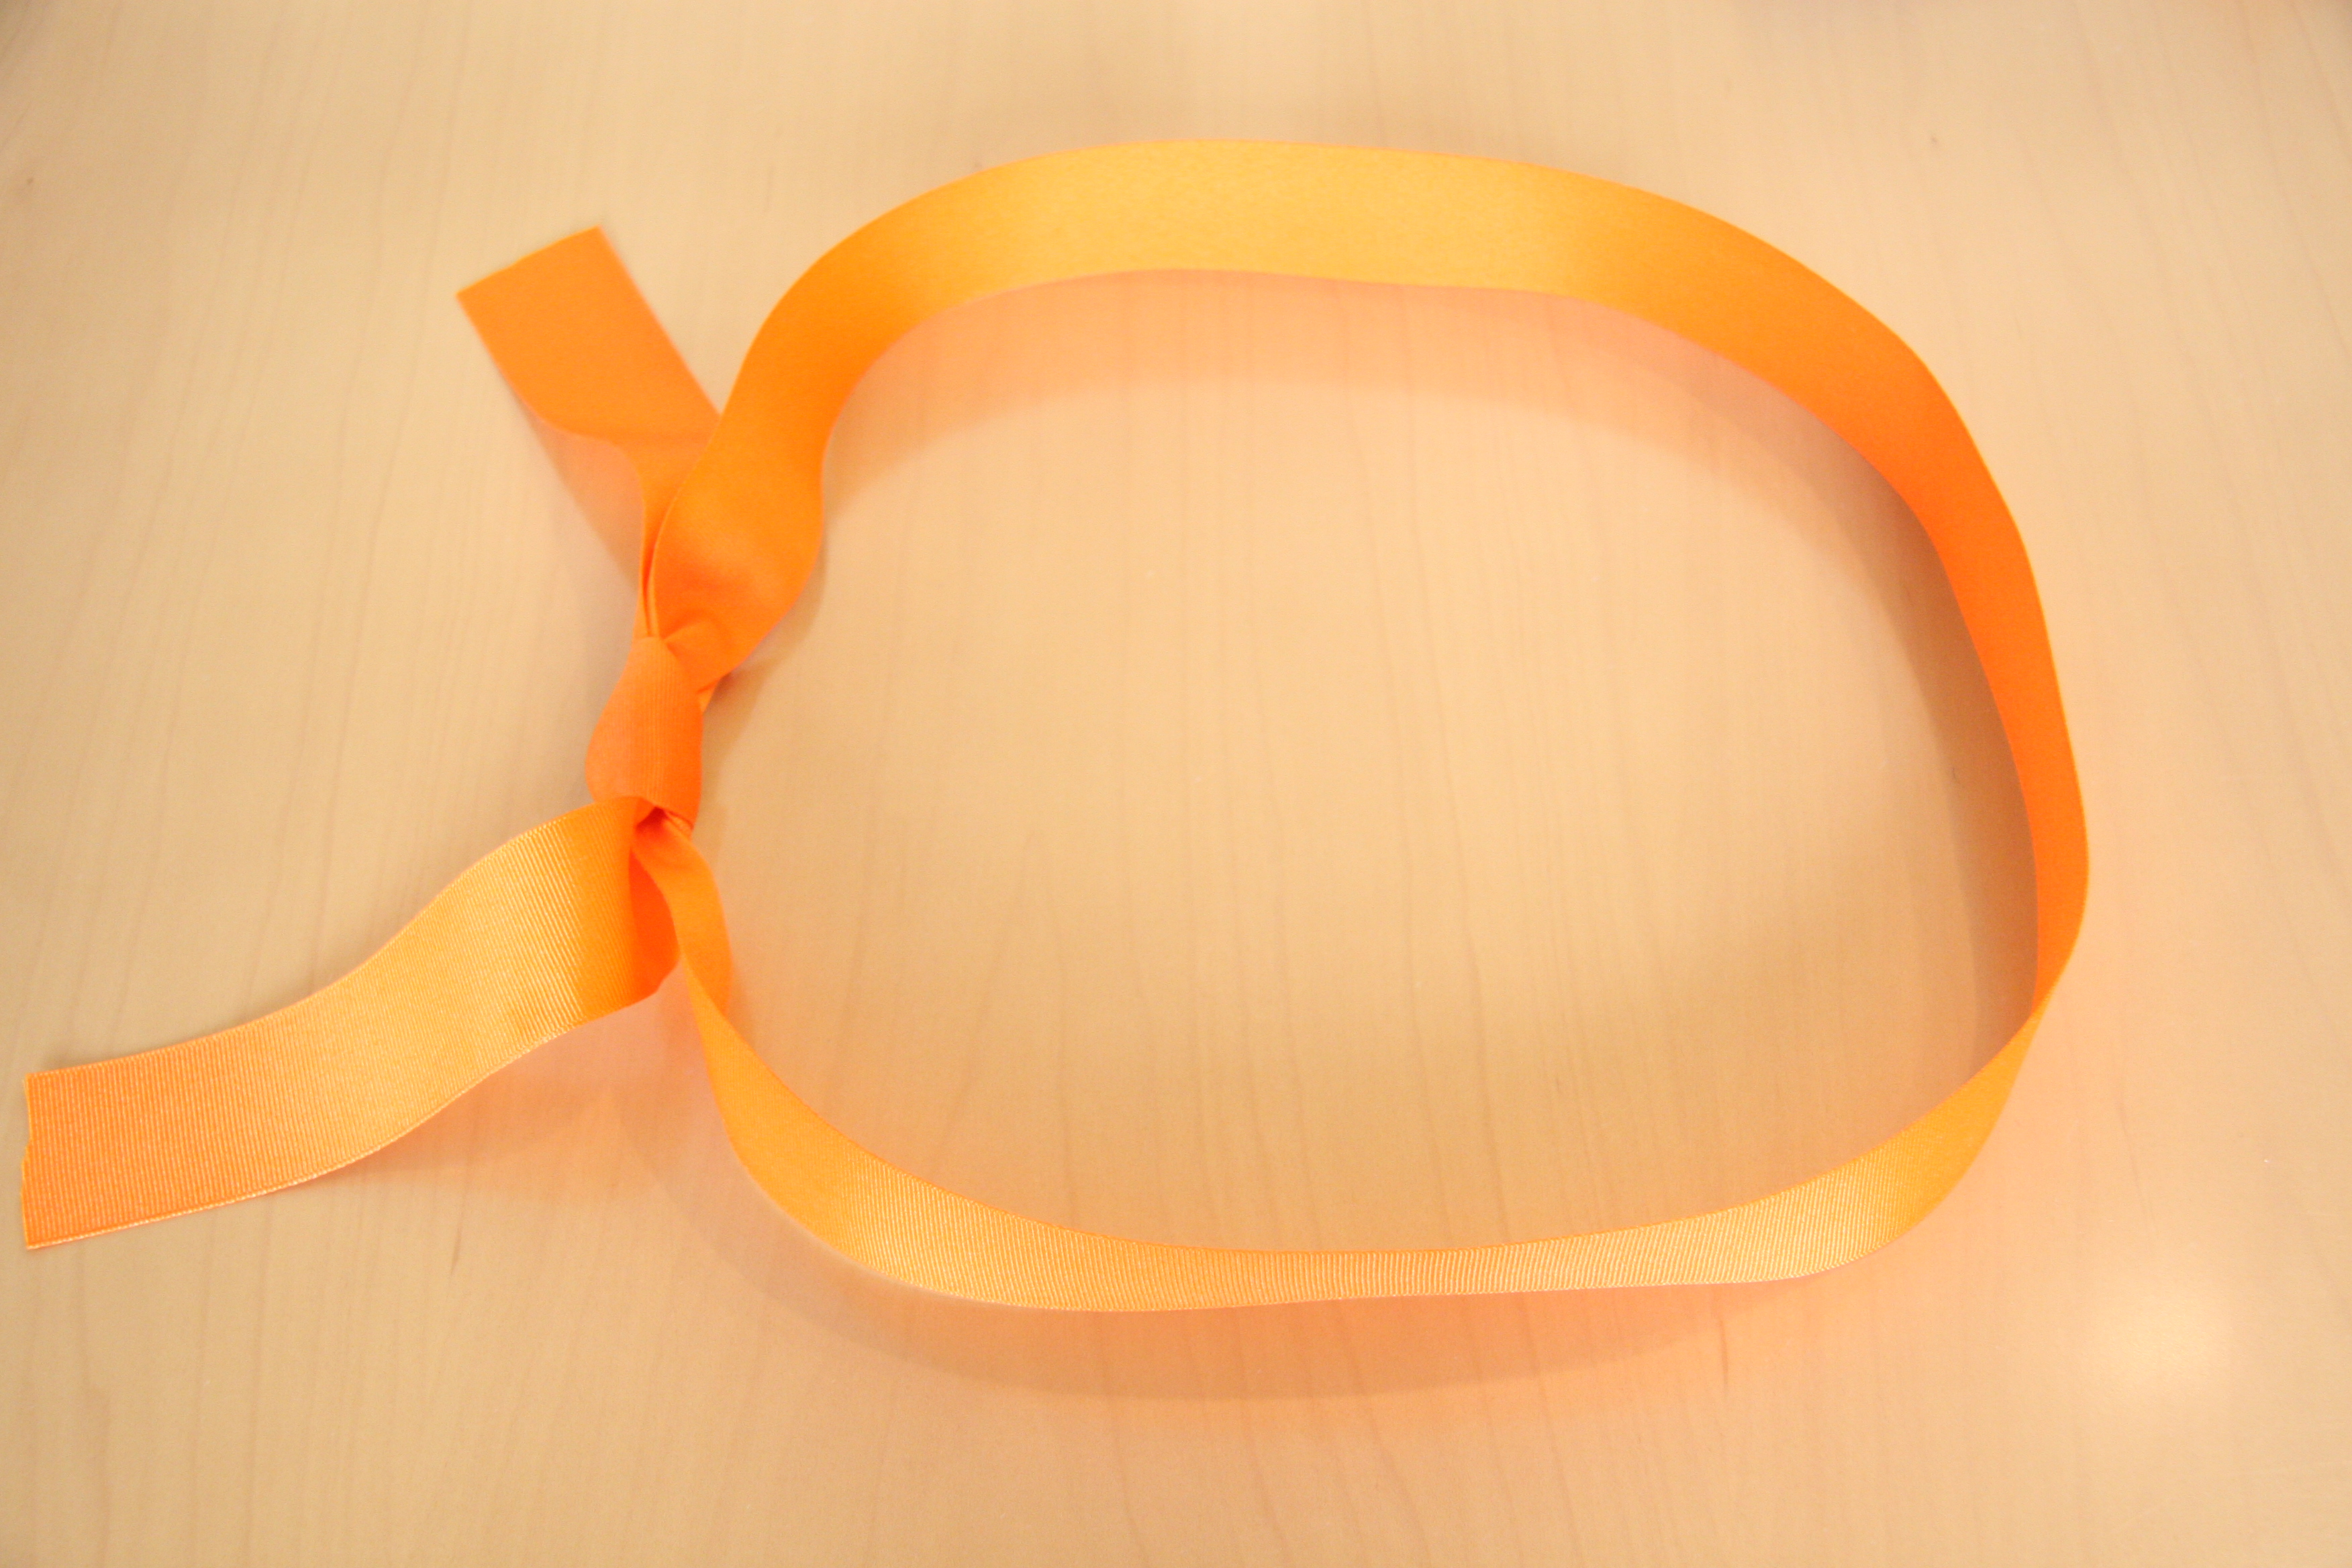 First, make a loop with the ribbon and tie a knot.